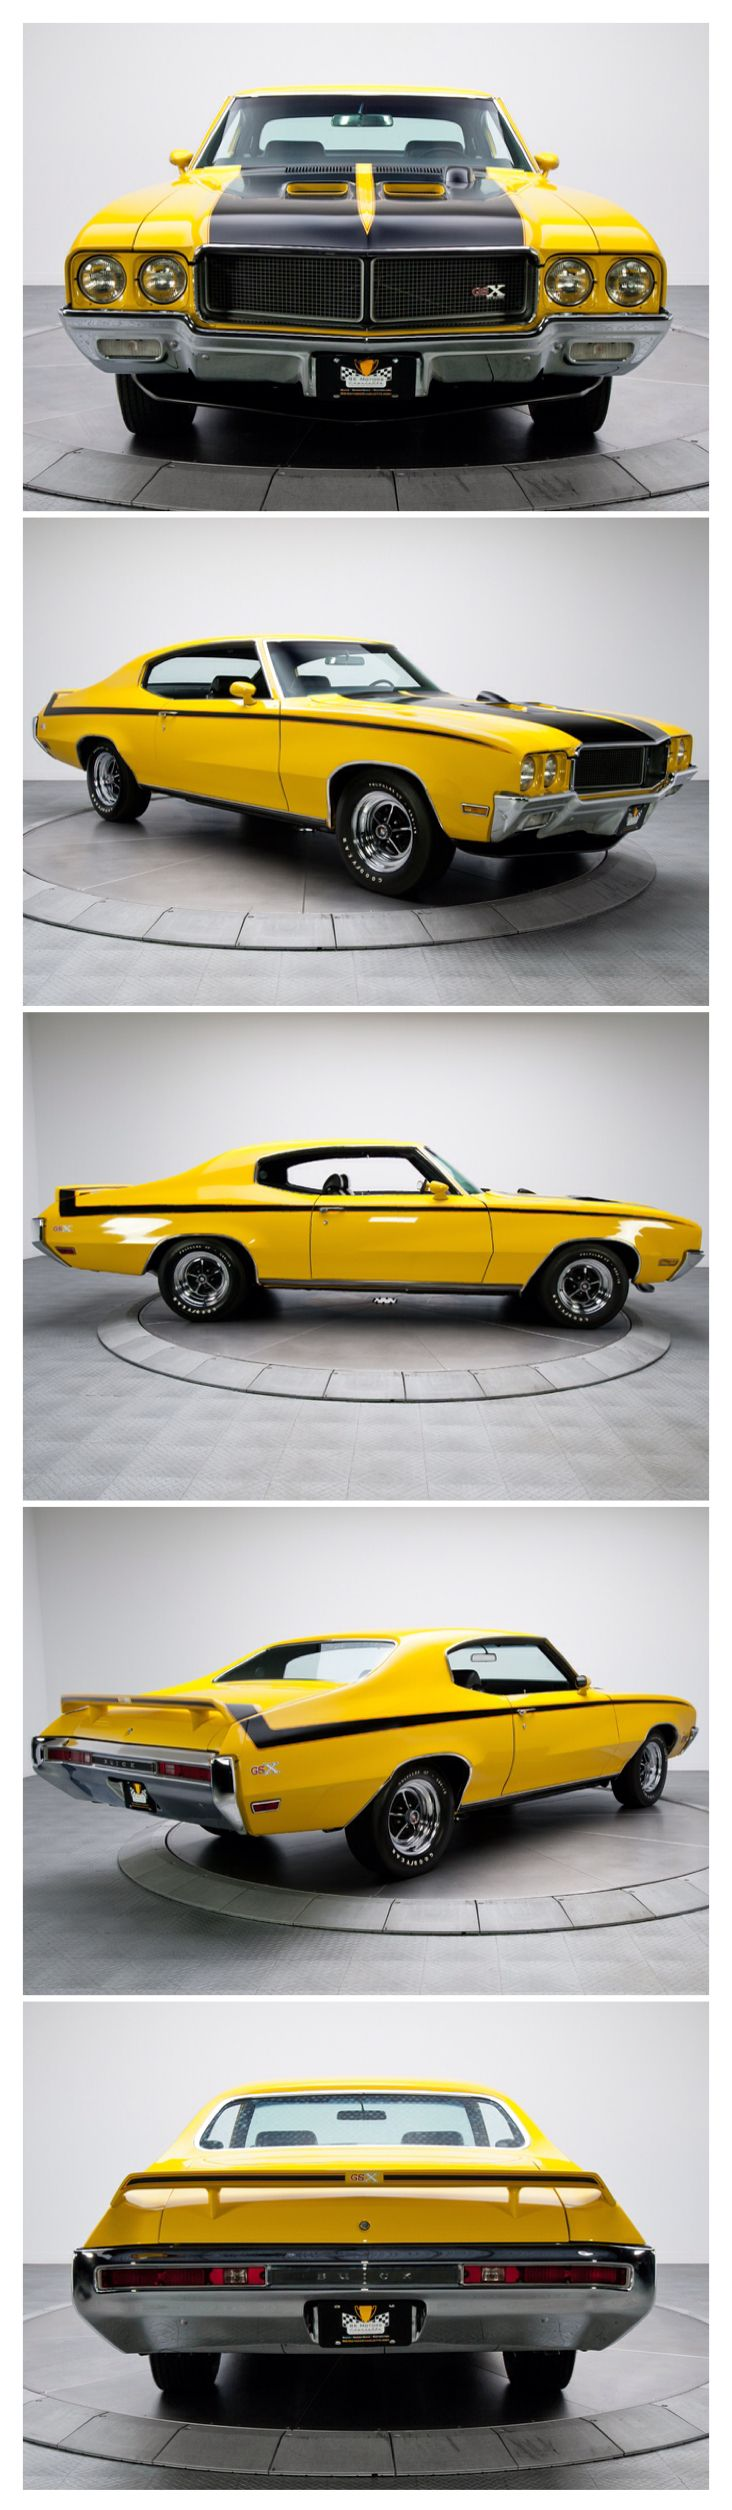 1970 Buick GSX...Re-pin brought to you by #LowCost Insuranceagents at #HouseofInsurance Eugene